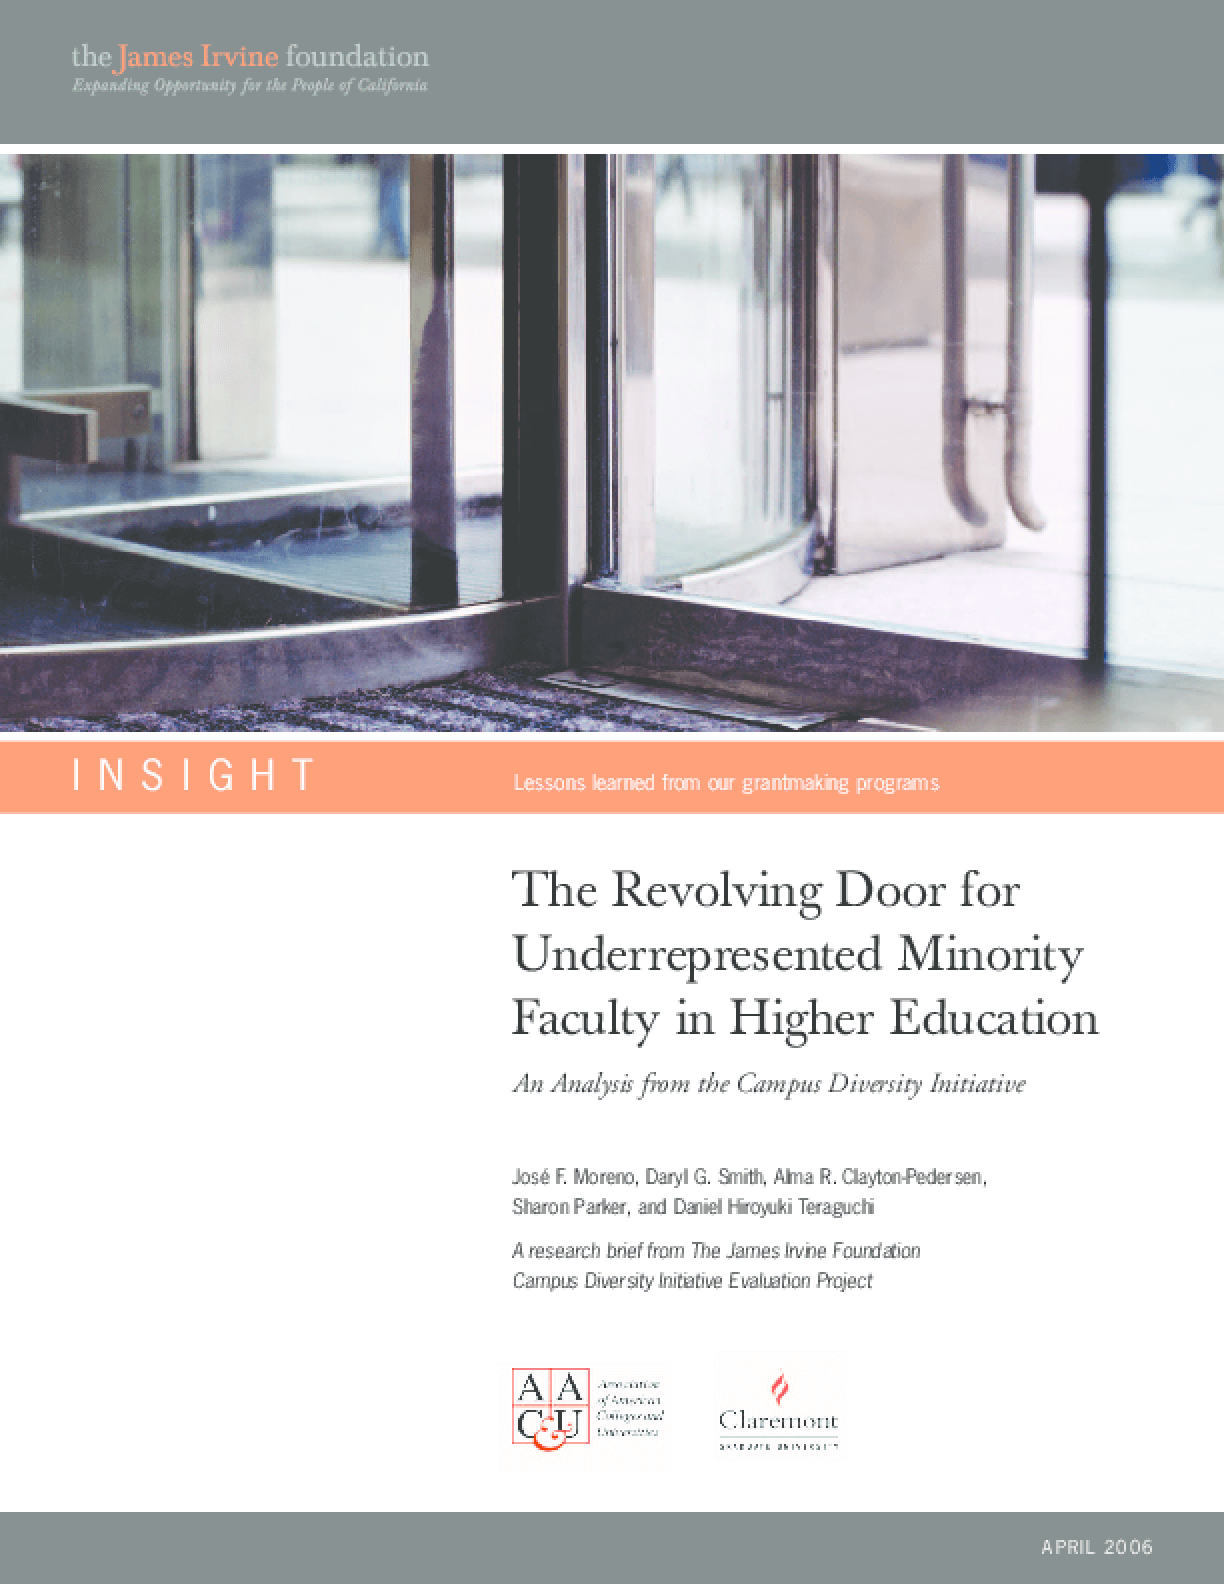 The Revolving Door for Underrepresented Minority Faculty in Higher Education